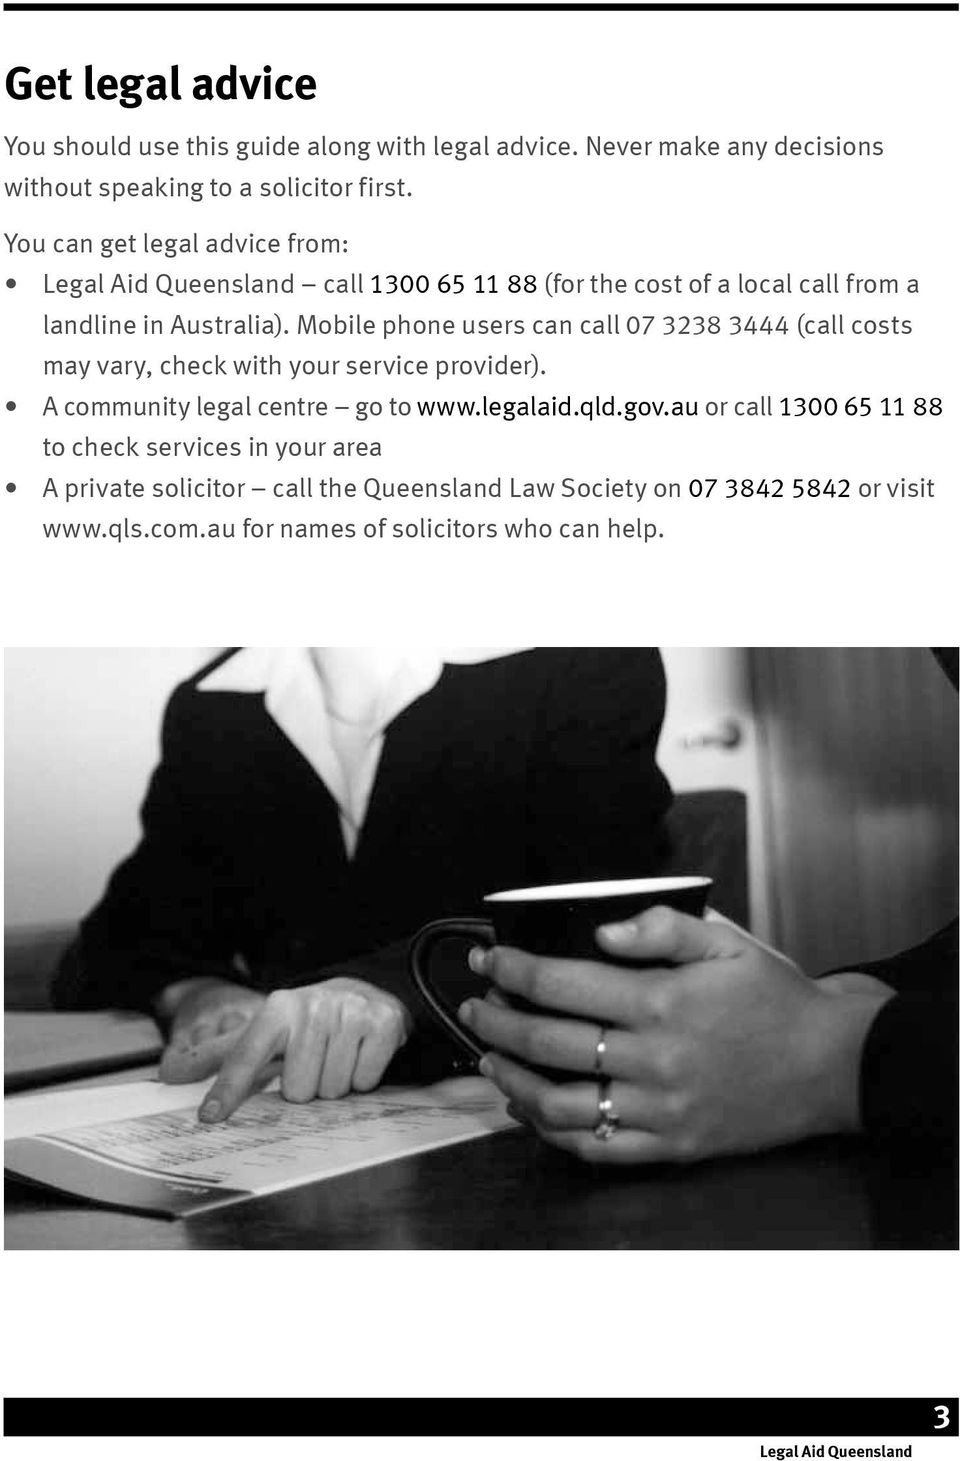 Mobile phone users can call 07 3238 3444 (call costs may vary, check with your service provider). A community legal centre go to www.legalaid.qld.gov.